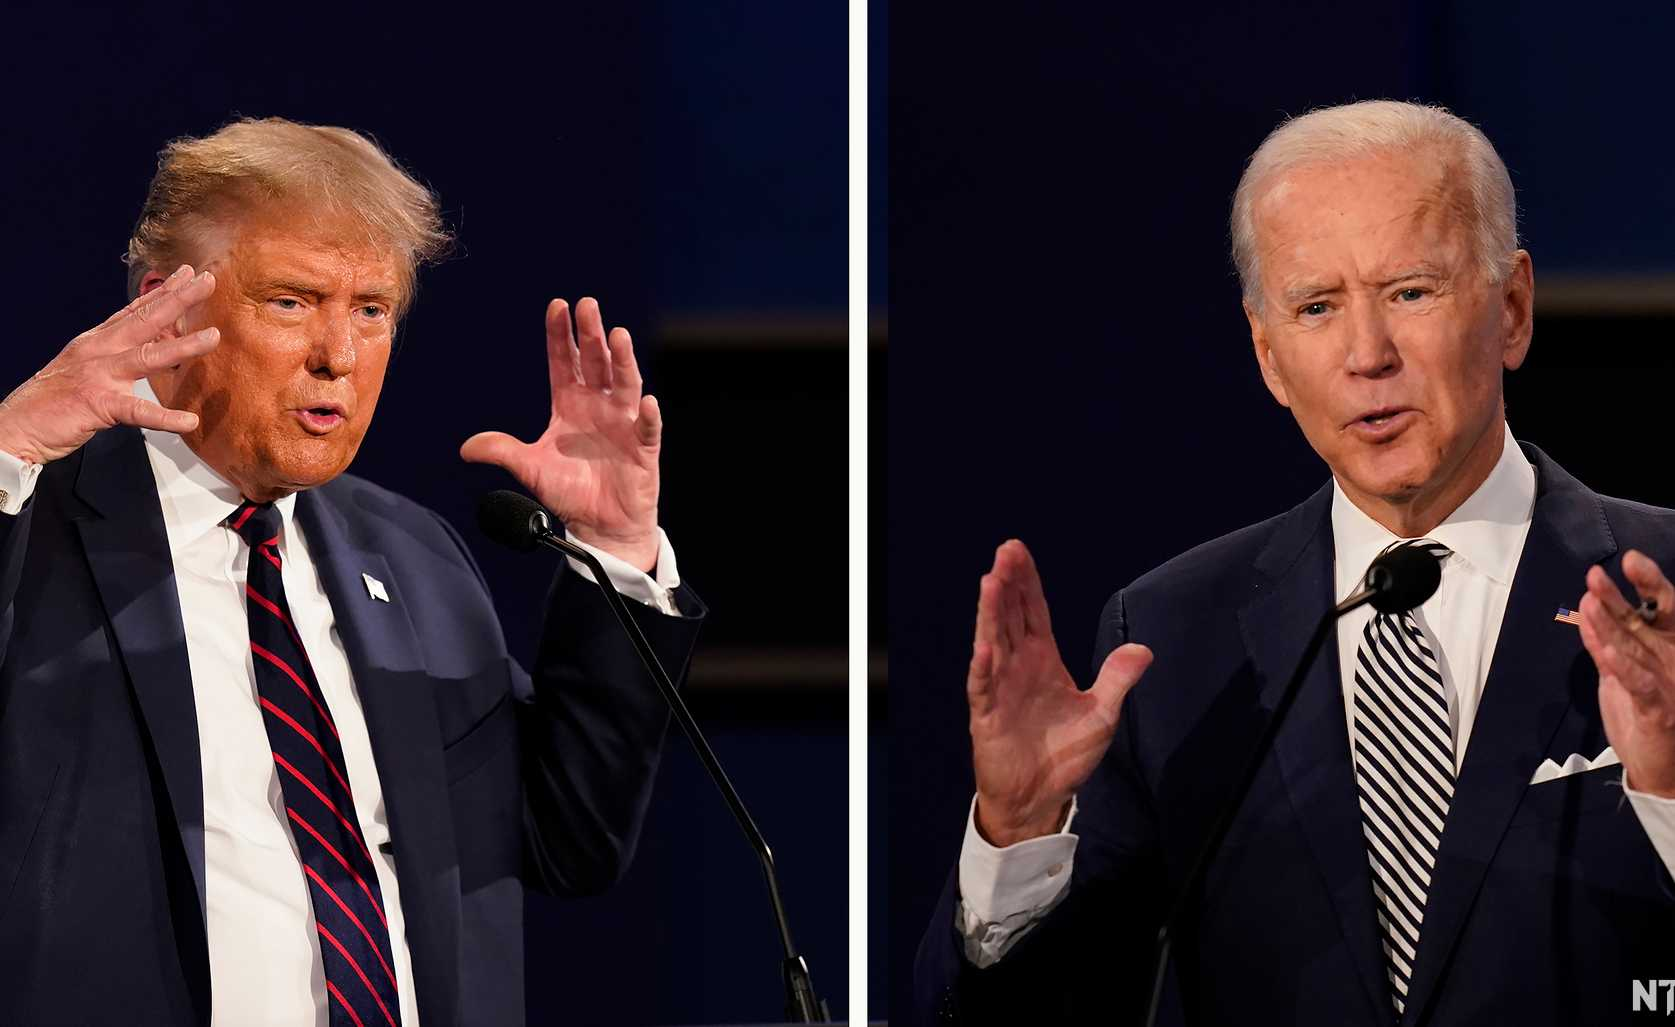 Trump & Biden, 1st TV debate, 2020. Photo: Patrick Semansky/cropped from original/licensed under CC4.0, linked at bottom of article